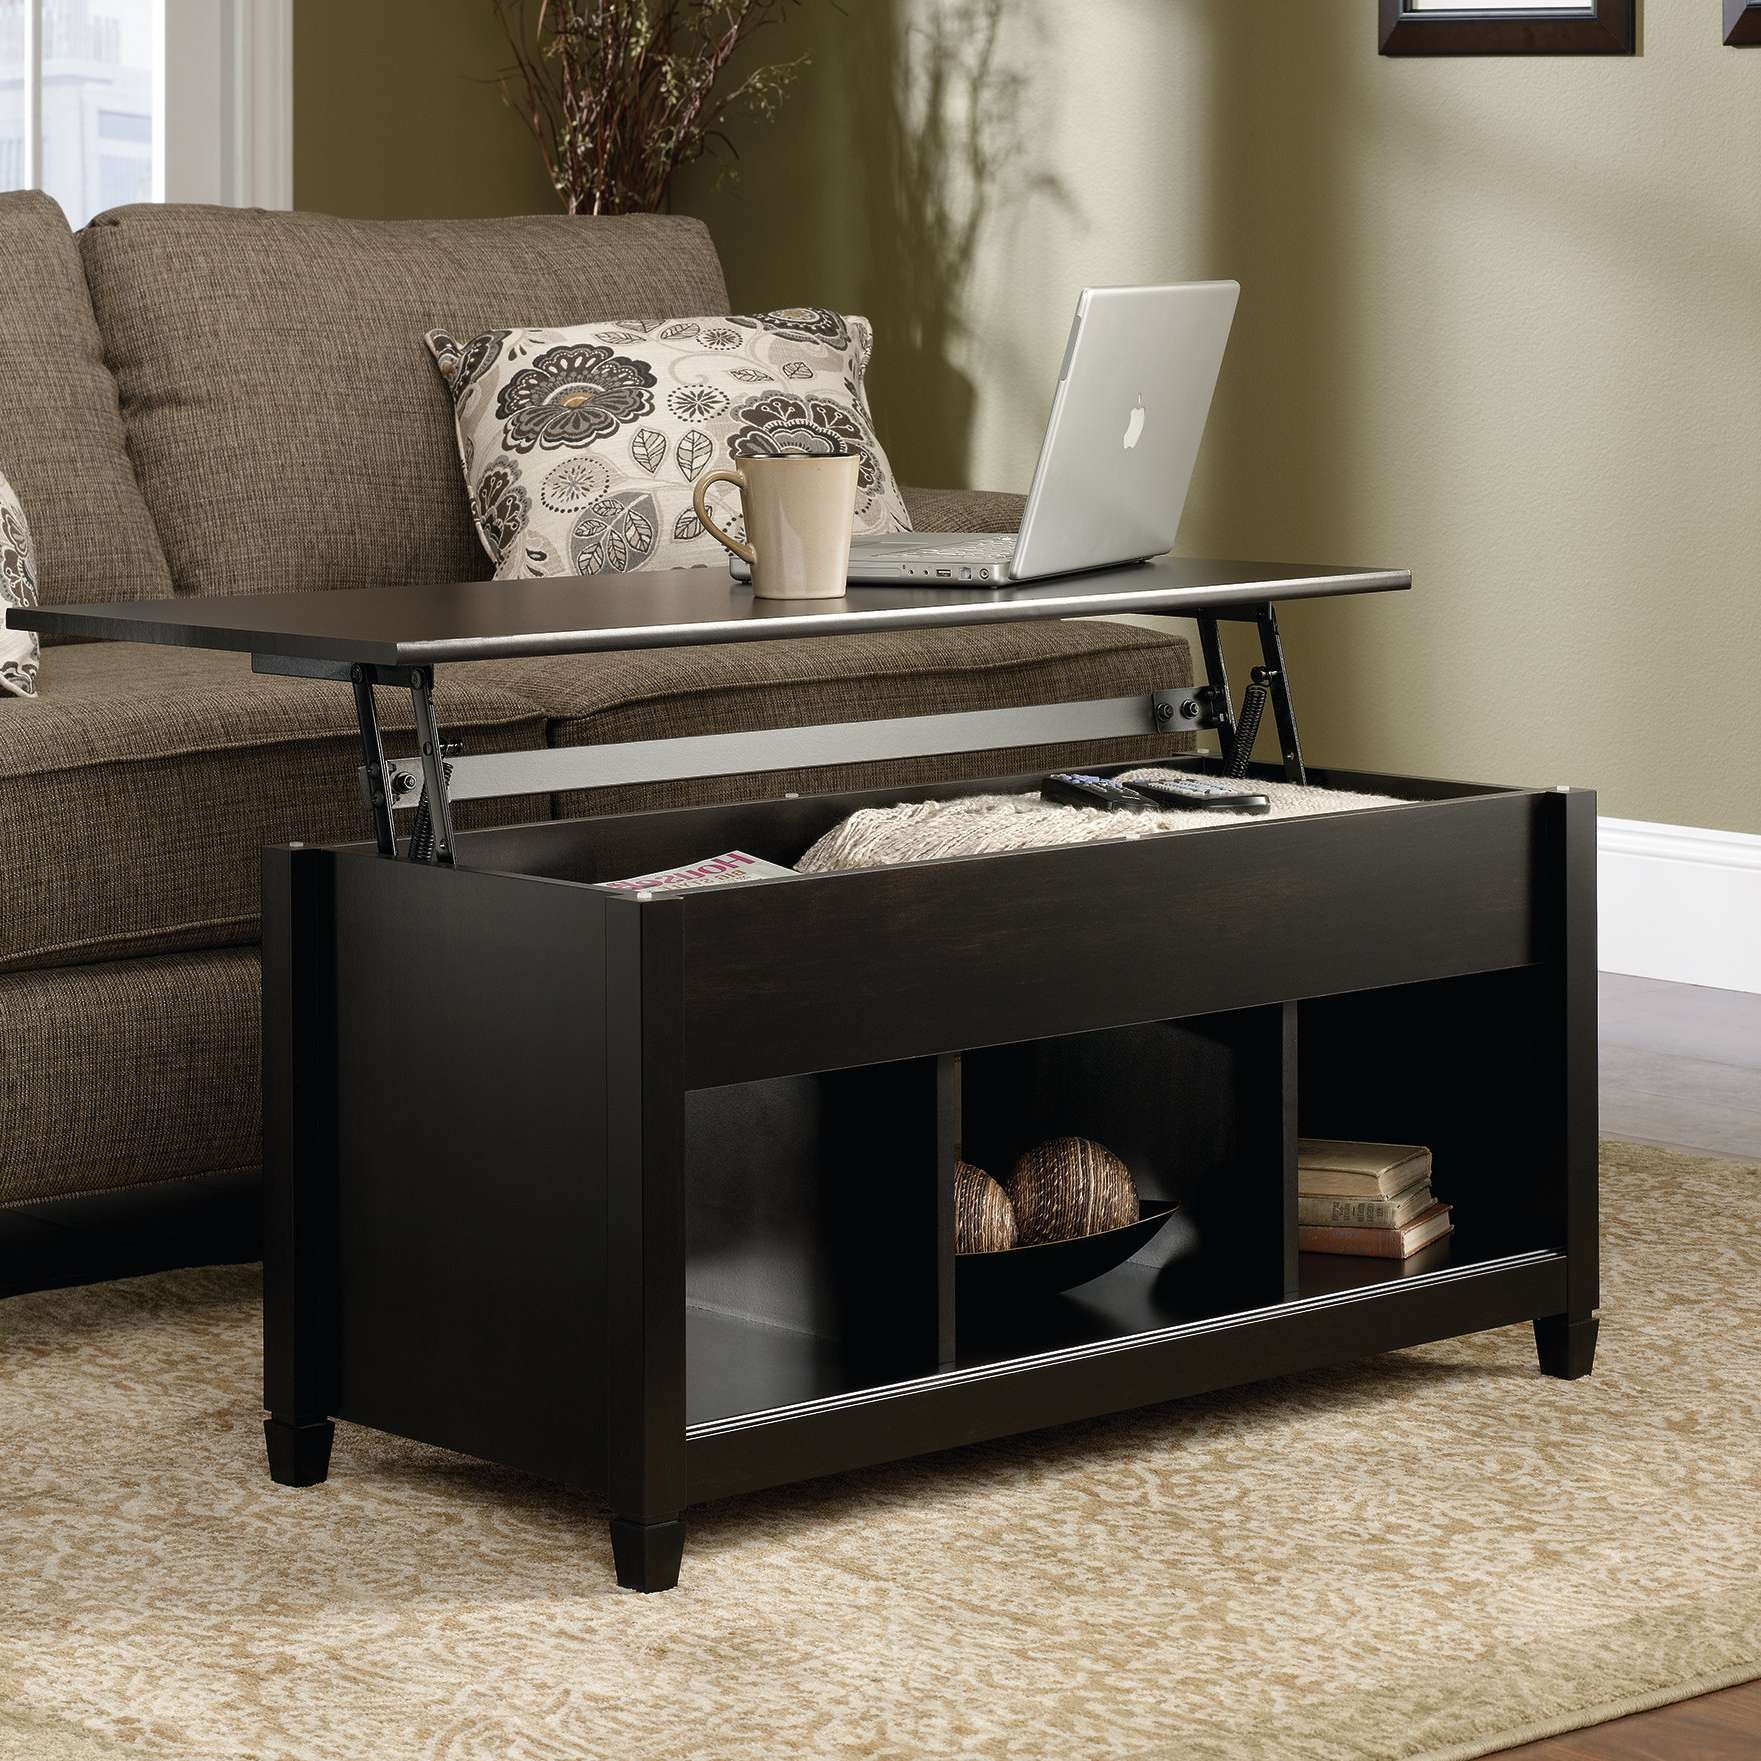 Wayfair For Most Current Lift Top Coffee Tables (View 20 of 20)